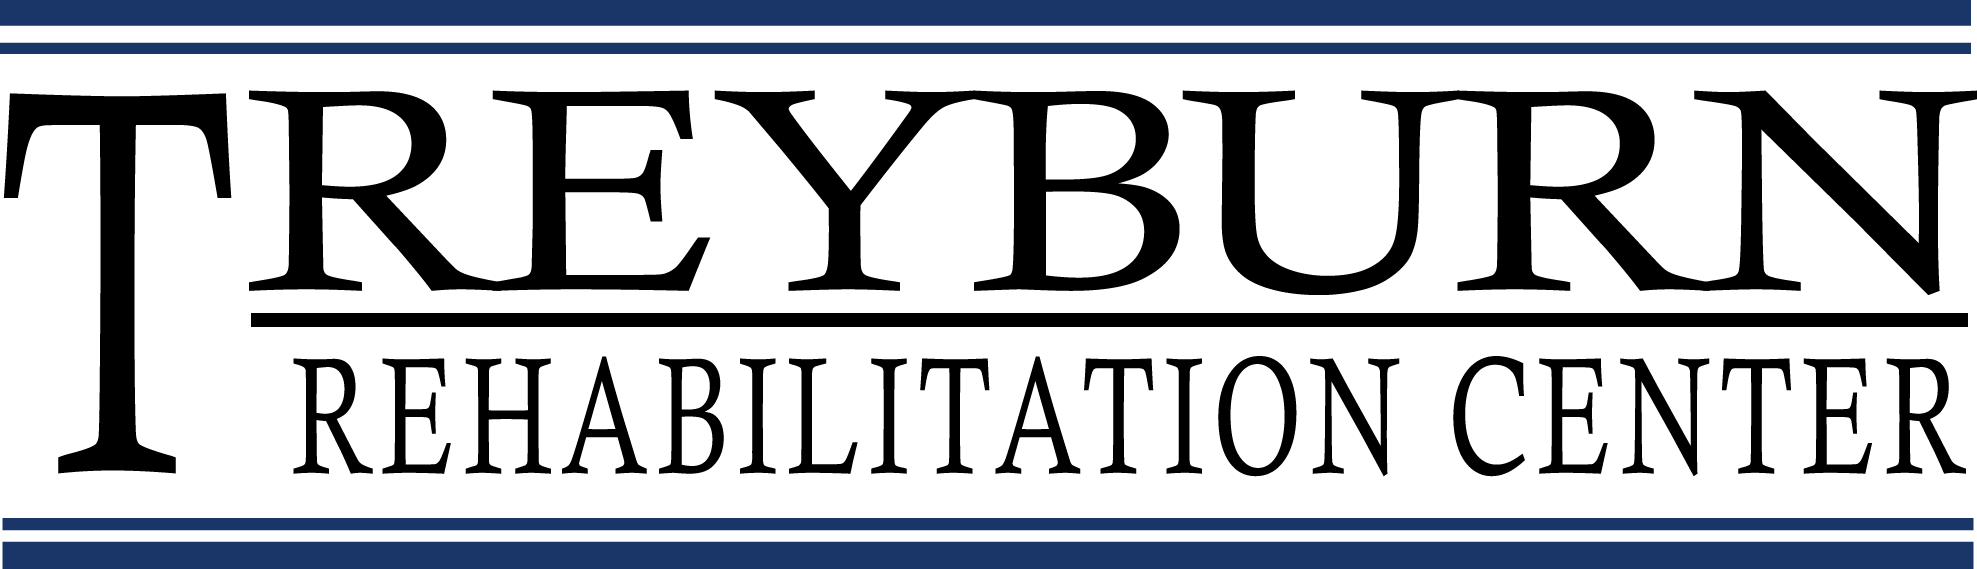 Treyburn Rehabilitation Center logo